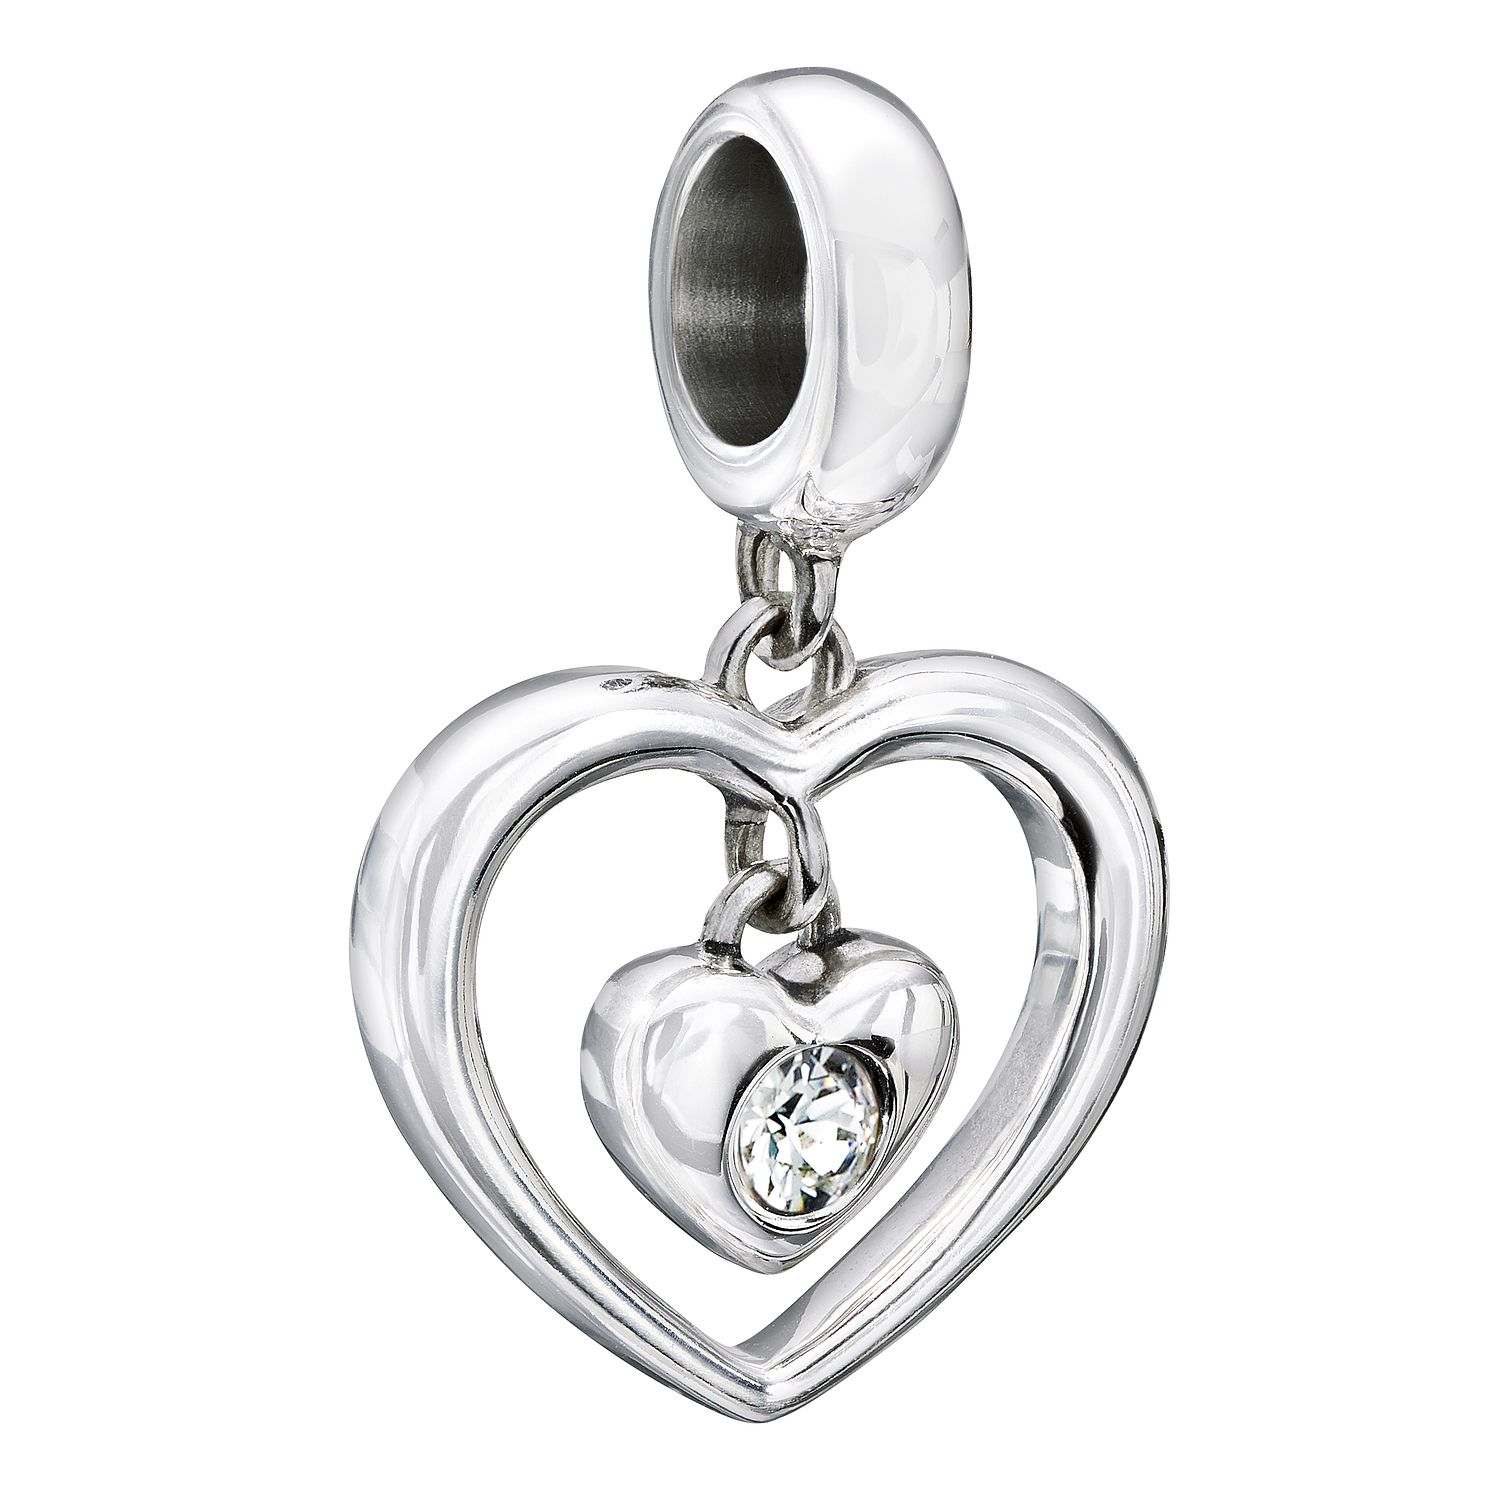 Chamilia Radiant Heart White Swarovski Crystal Charm - Product number 2177757